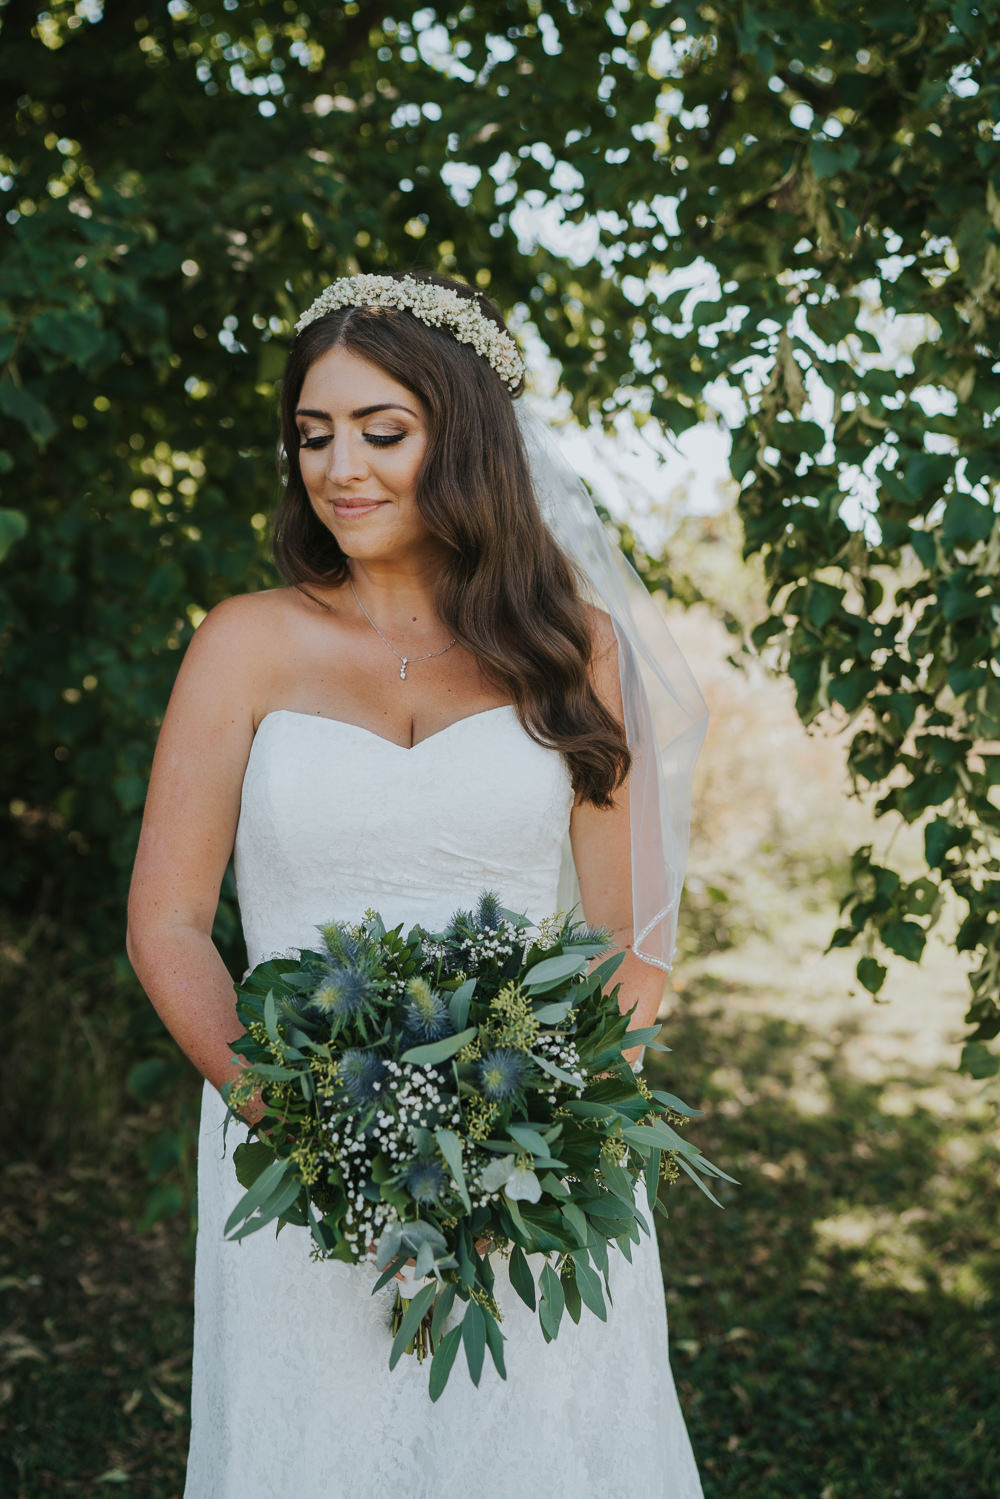 Intimate Outdoor Natural Relaxed Laid Back Summer Bride Greenery Foliage Bouquet Veil | Prested Hall Wedding Grace Elizabeth Photography